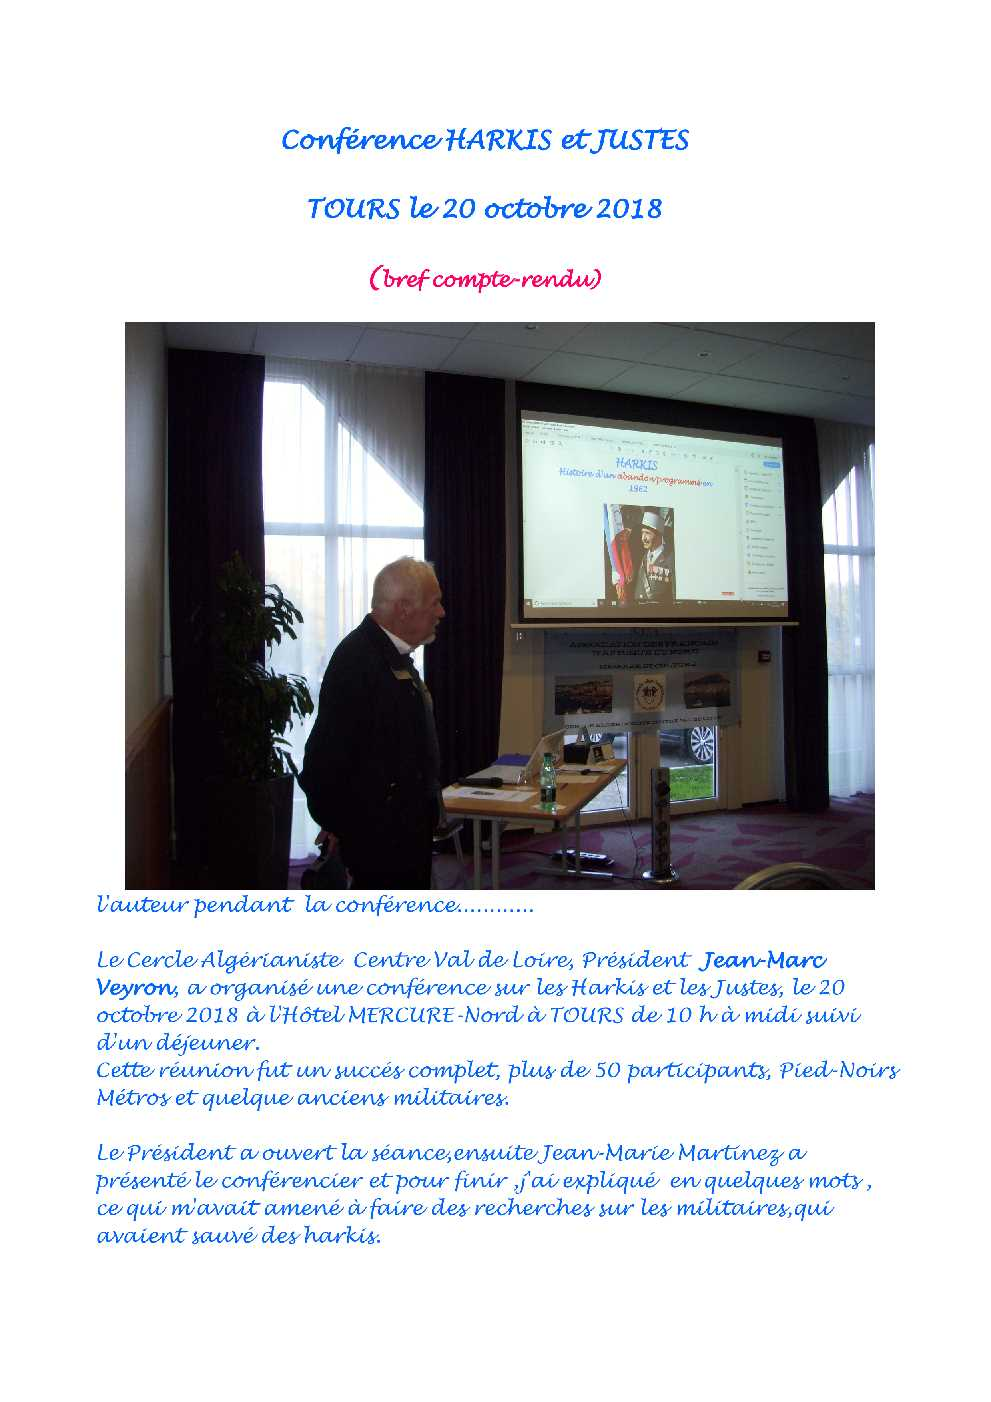 CONFERENCE HARKIS ET JUSTES Tours_14